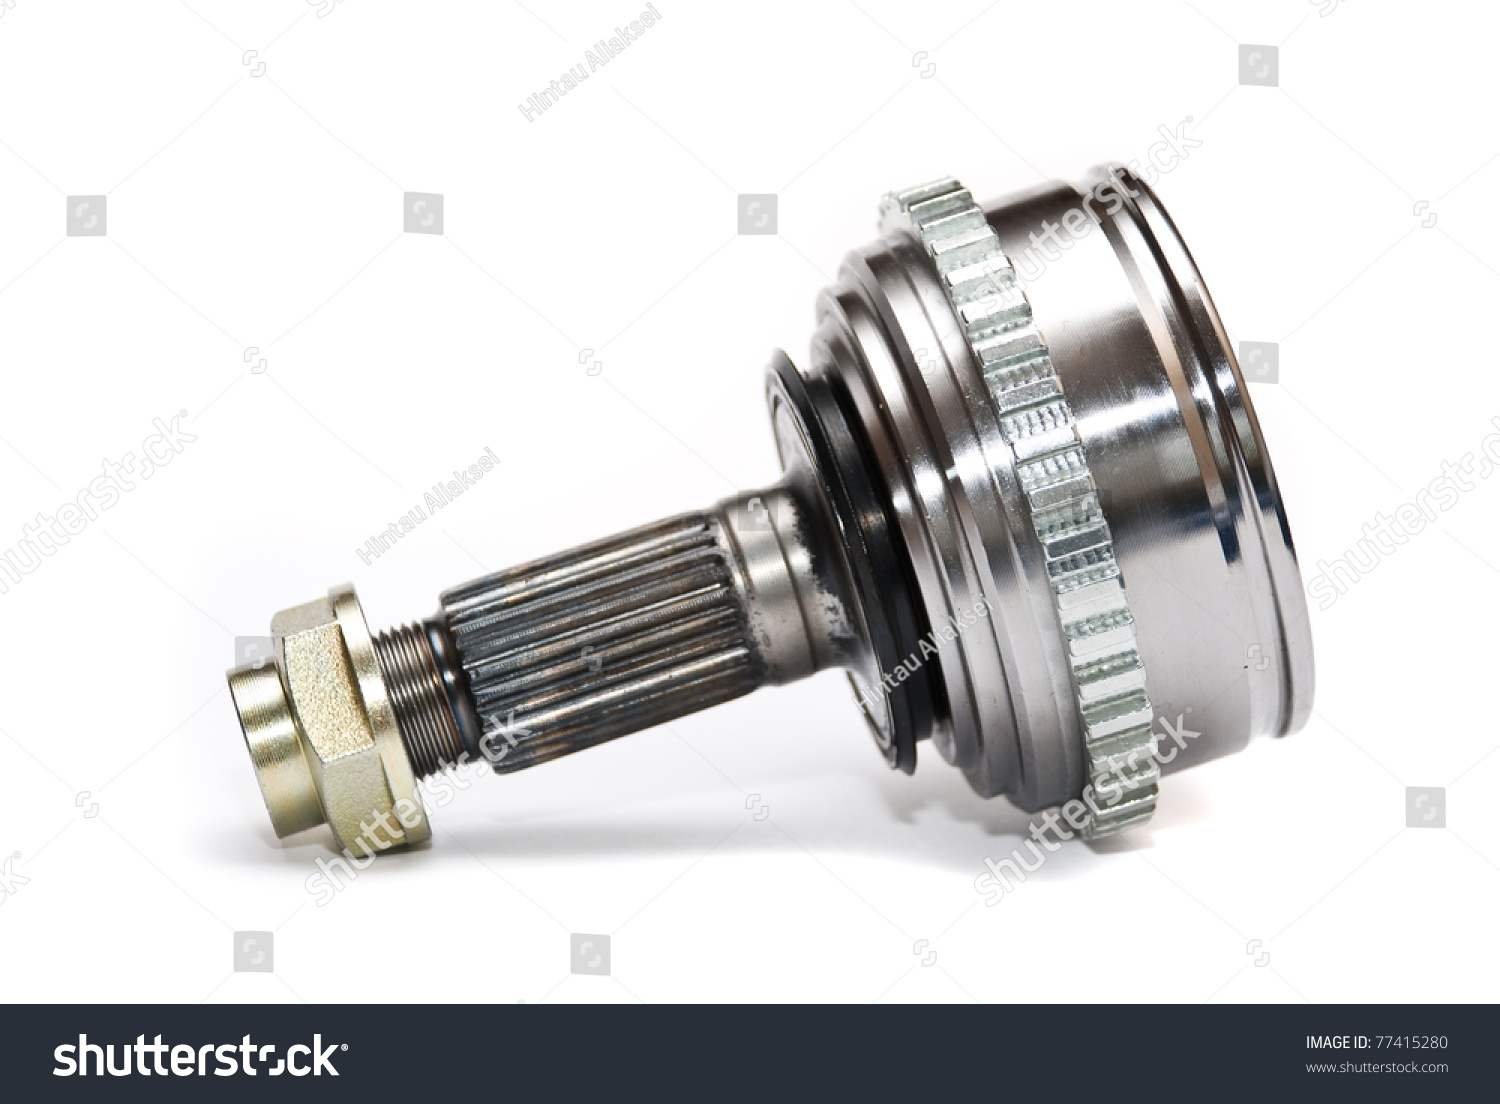 cv joints  constant velocity joints  part wheel of the car  stock photo 77415280   shutterstock